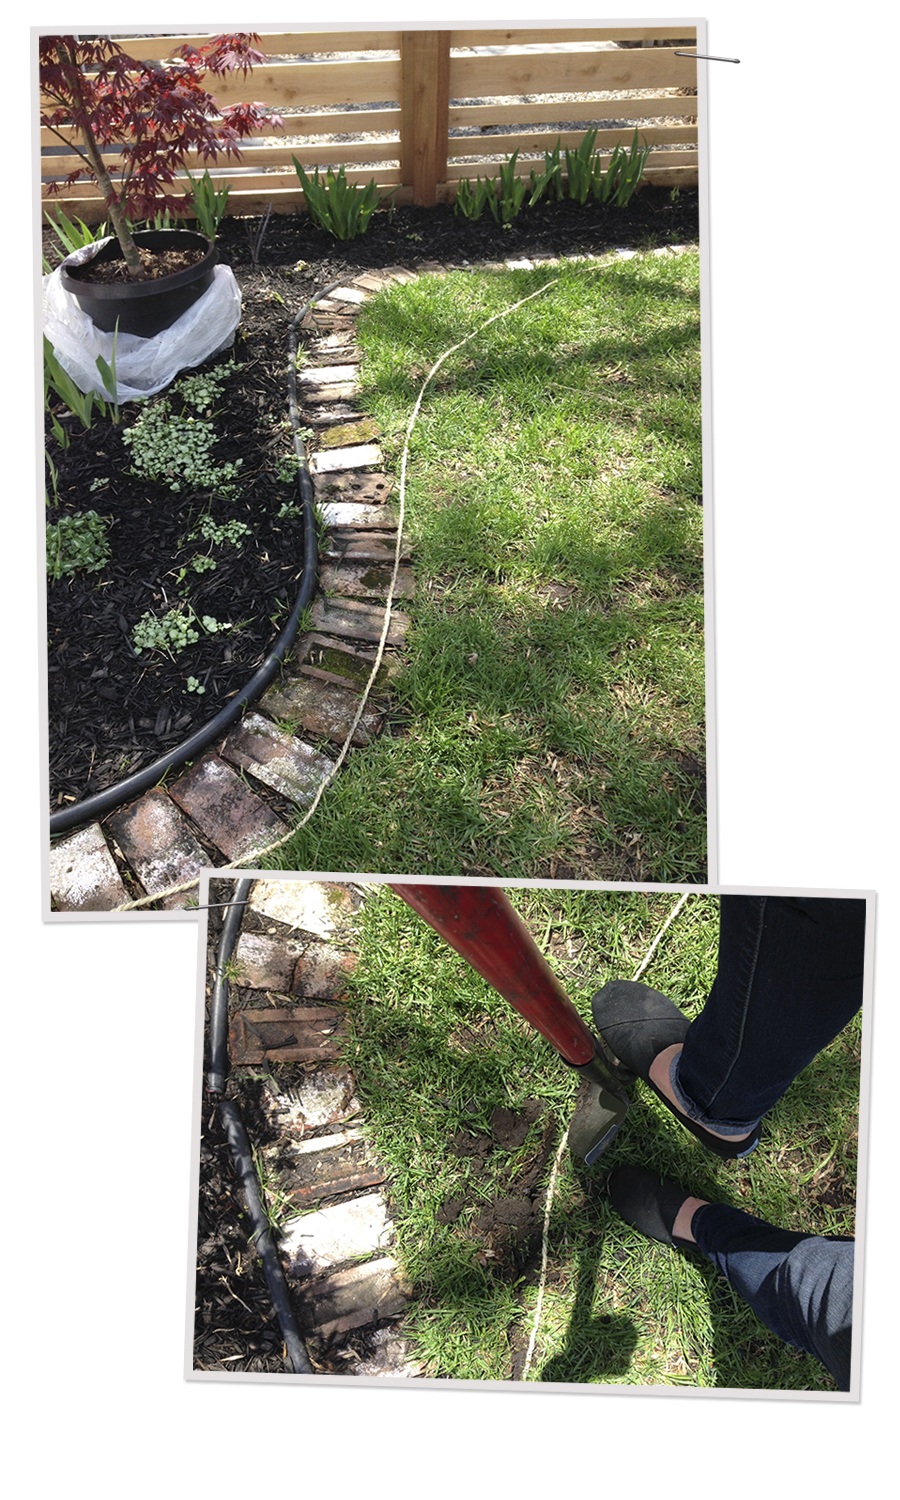 Adjusting the Border on the Flower Bed